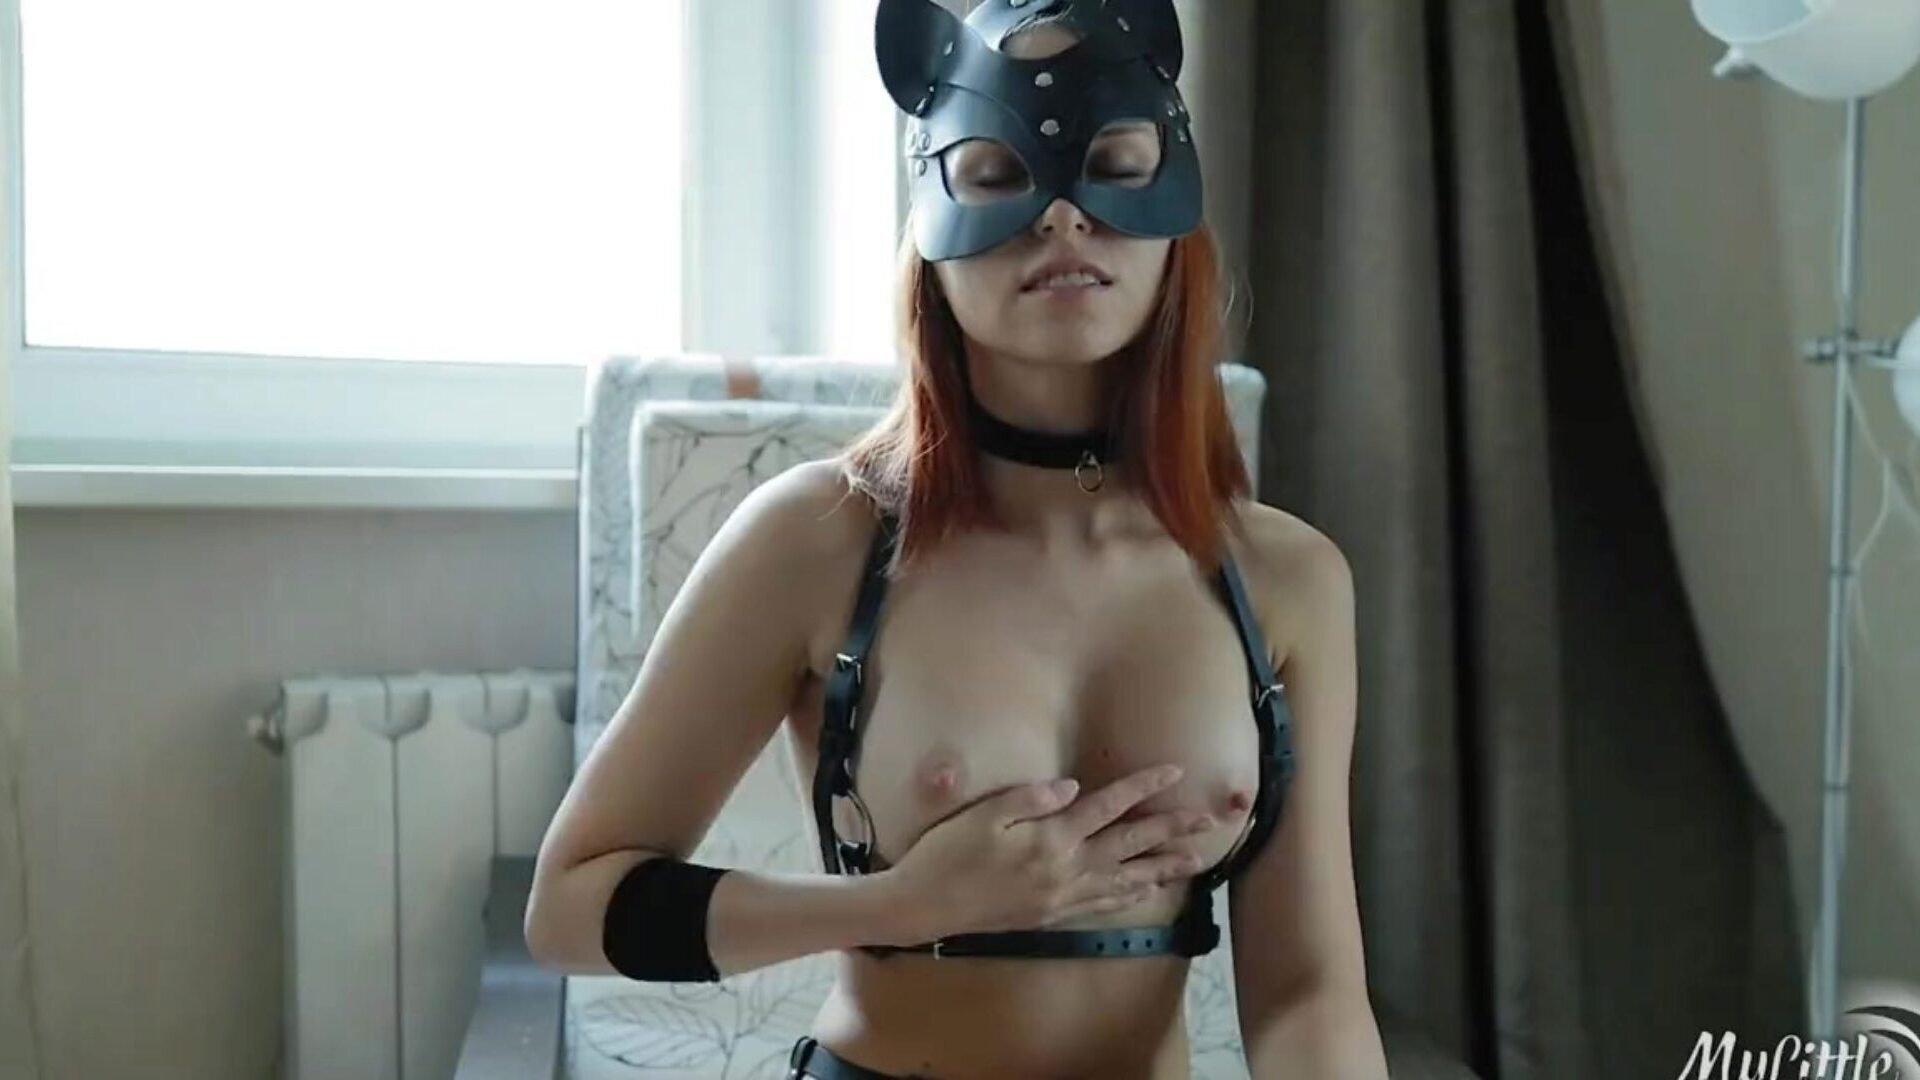 When my Master comes Home I Serve him and he Feed me with Cum. SOFT BDSM